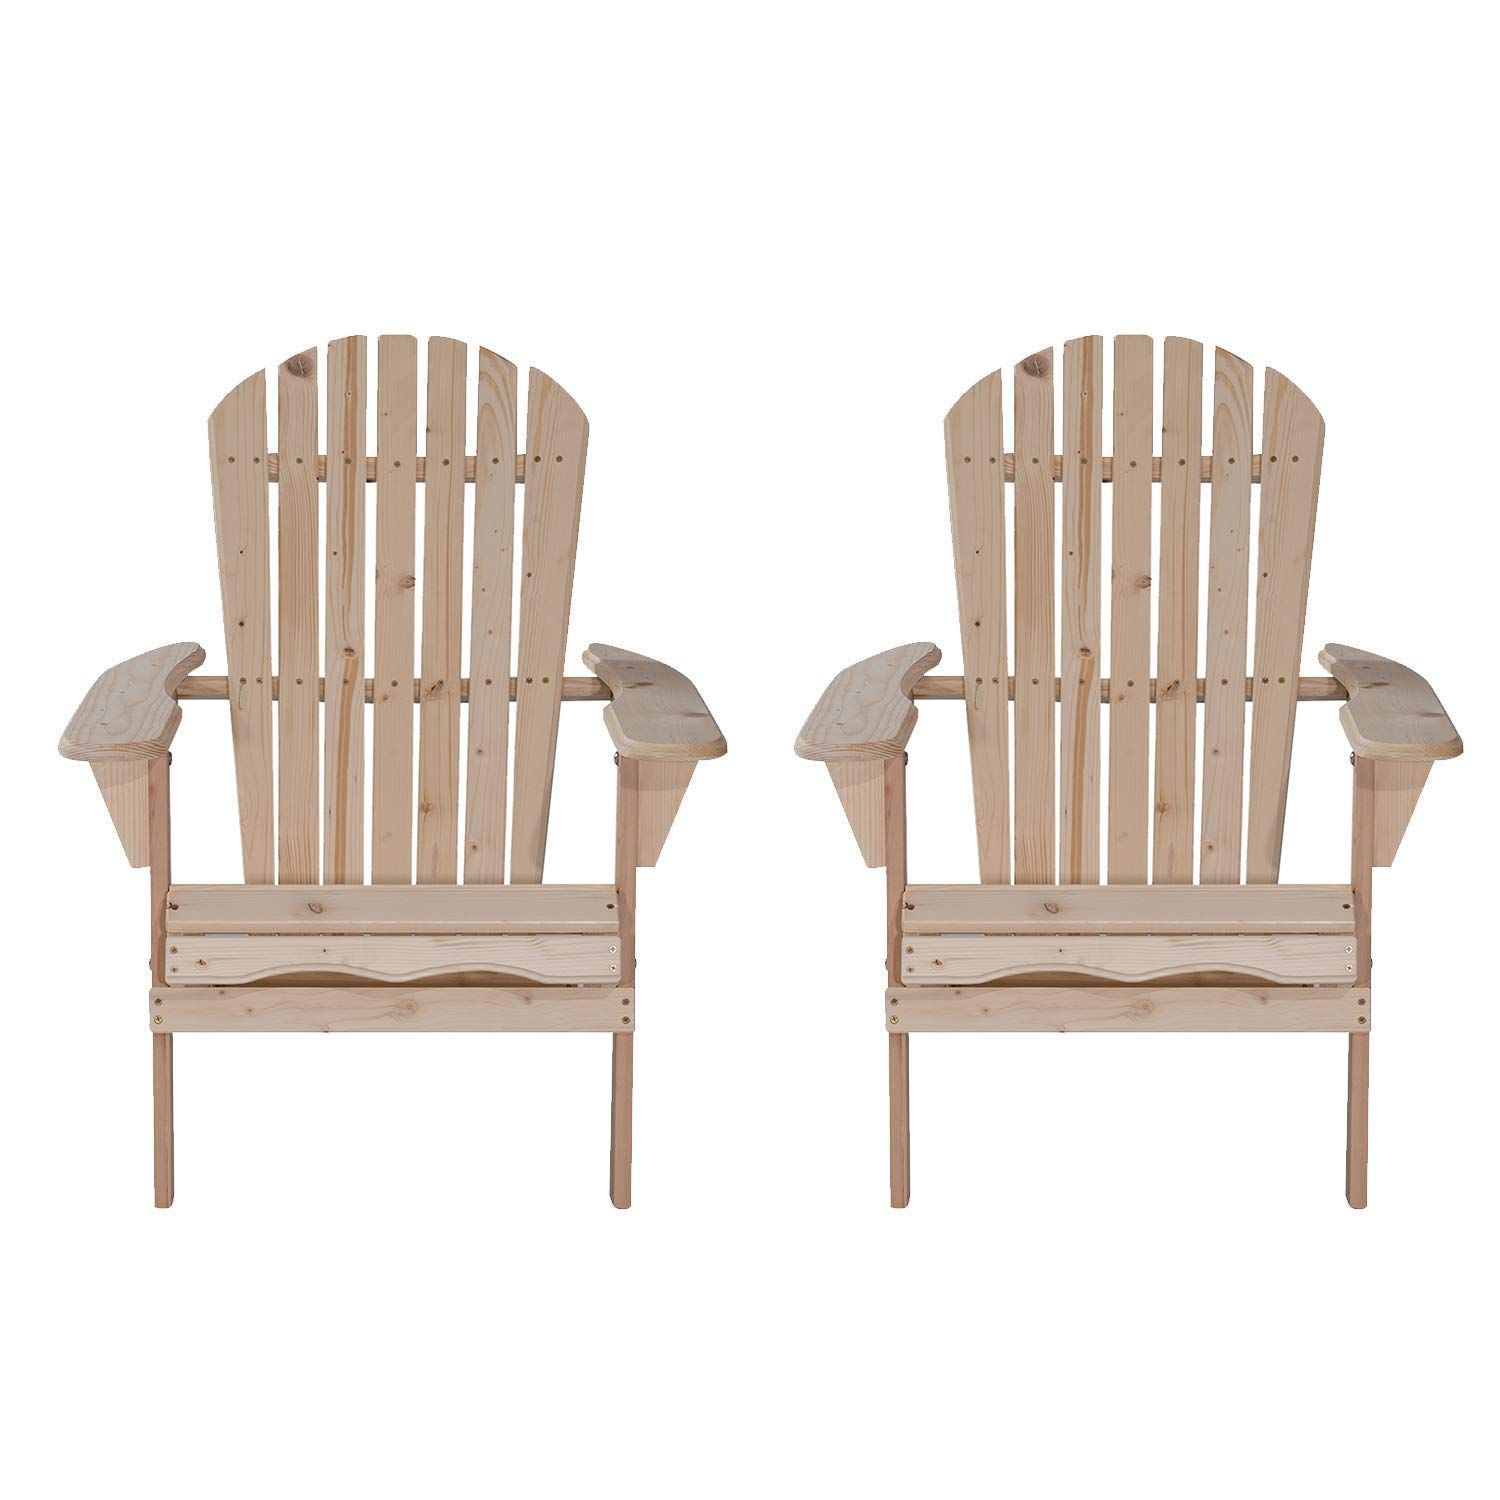 100 Best Adirondack Chairs 2020 Adirondack Chairs Chair Outdoor Chairs